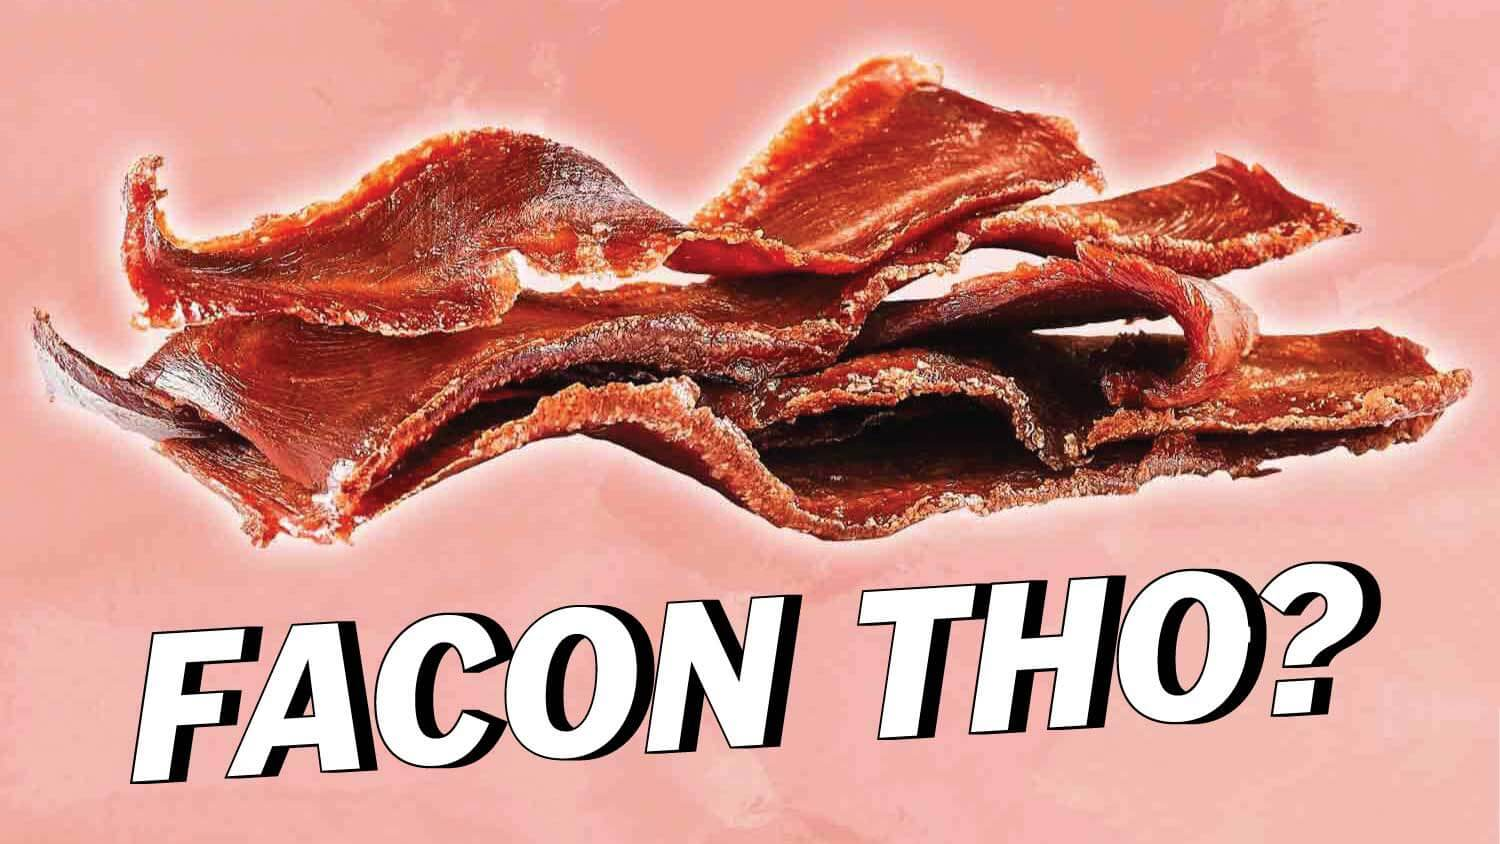 This Vegan Bacon Is So Realistic It Fools Food Critics